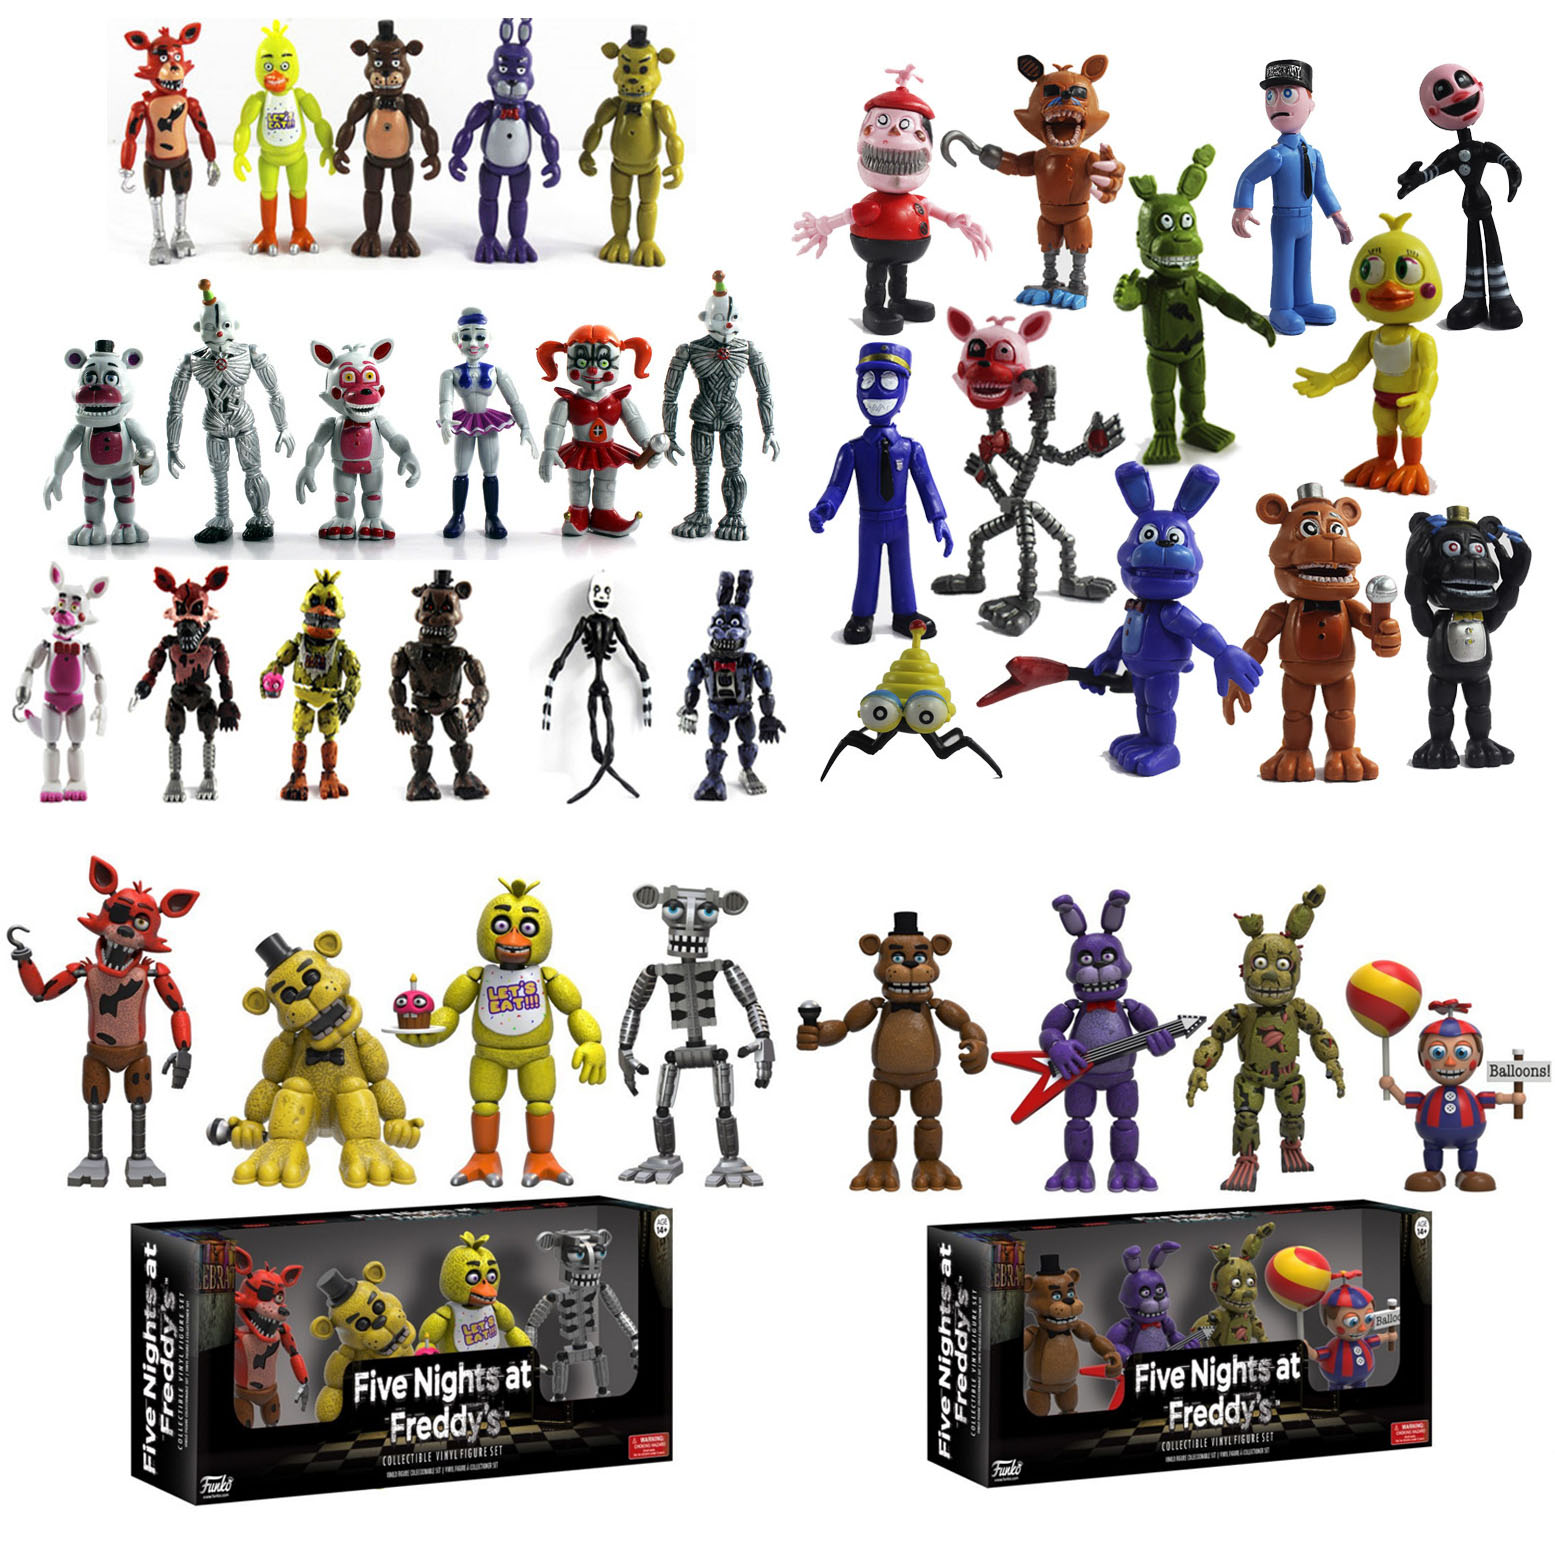 5/6/8/10/12PCS Five Nights At Freddy's Action Toy Figures Set FNAF Foxy Bonnie Freddy Fazbear Sister Model Dolls FNAF Gifts Toys